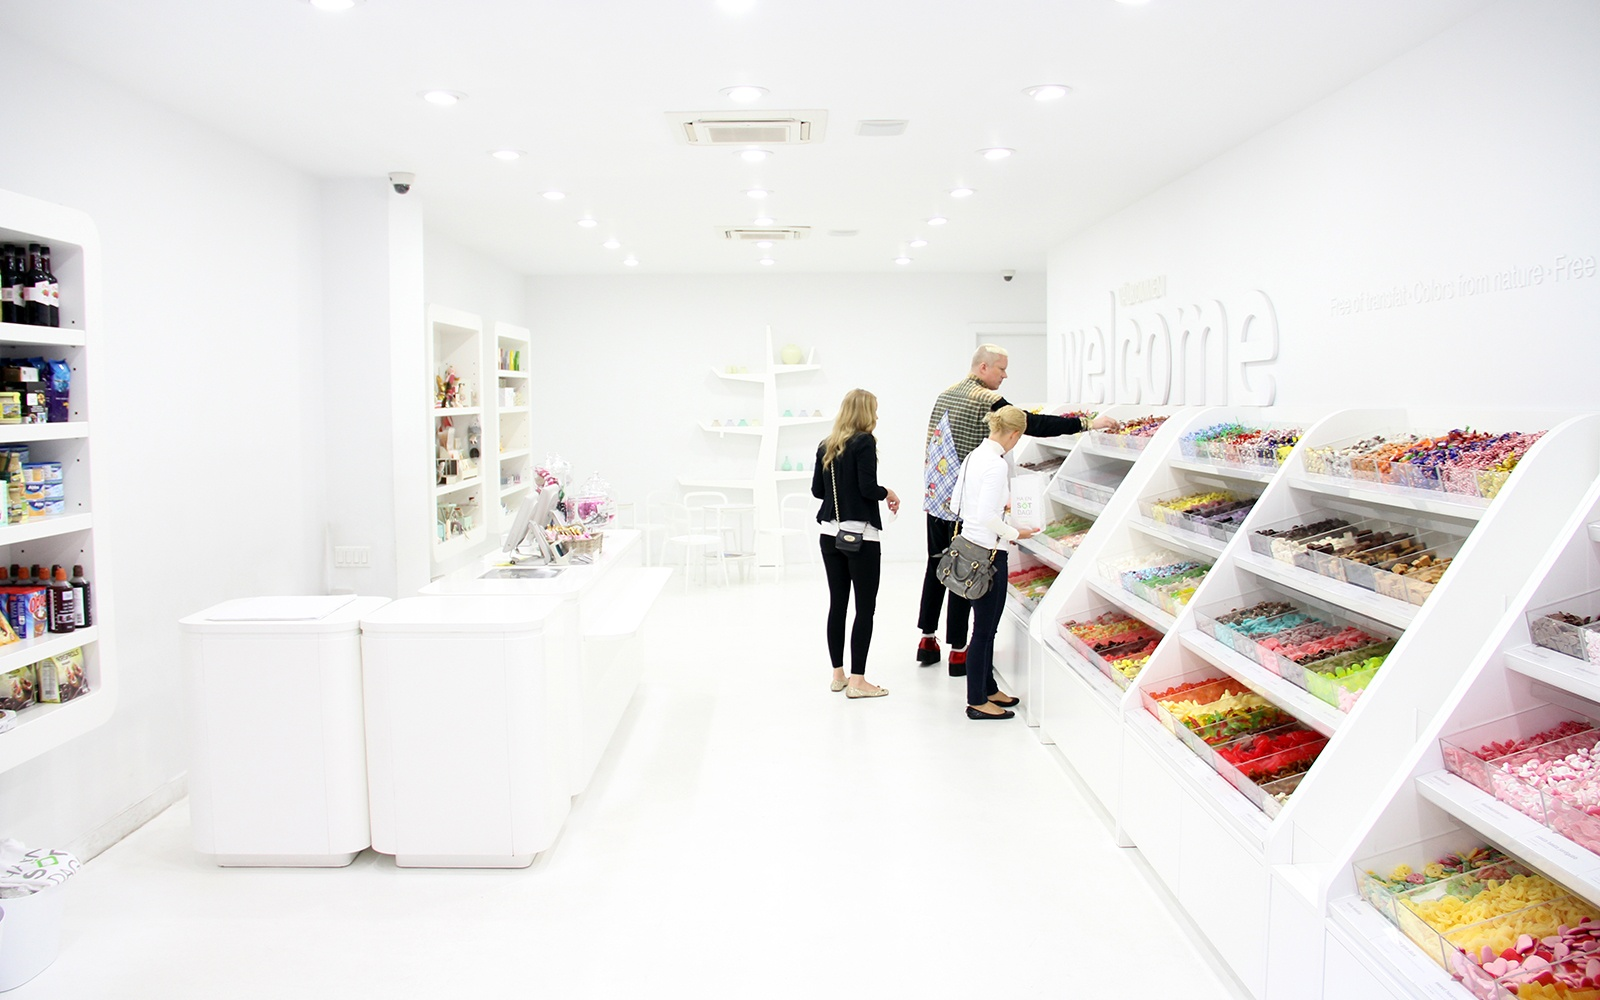 People Shopping in a Colorful Candy Store